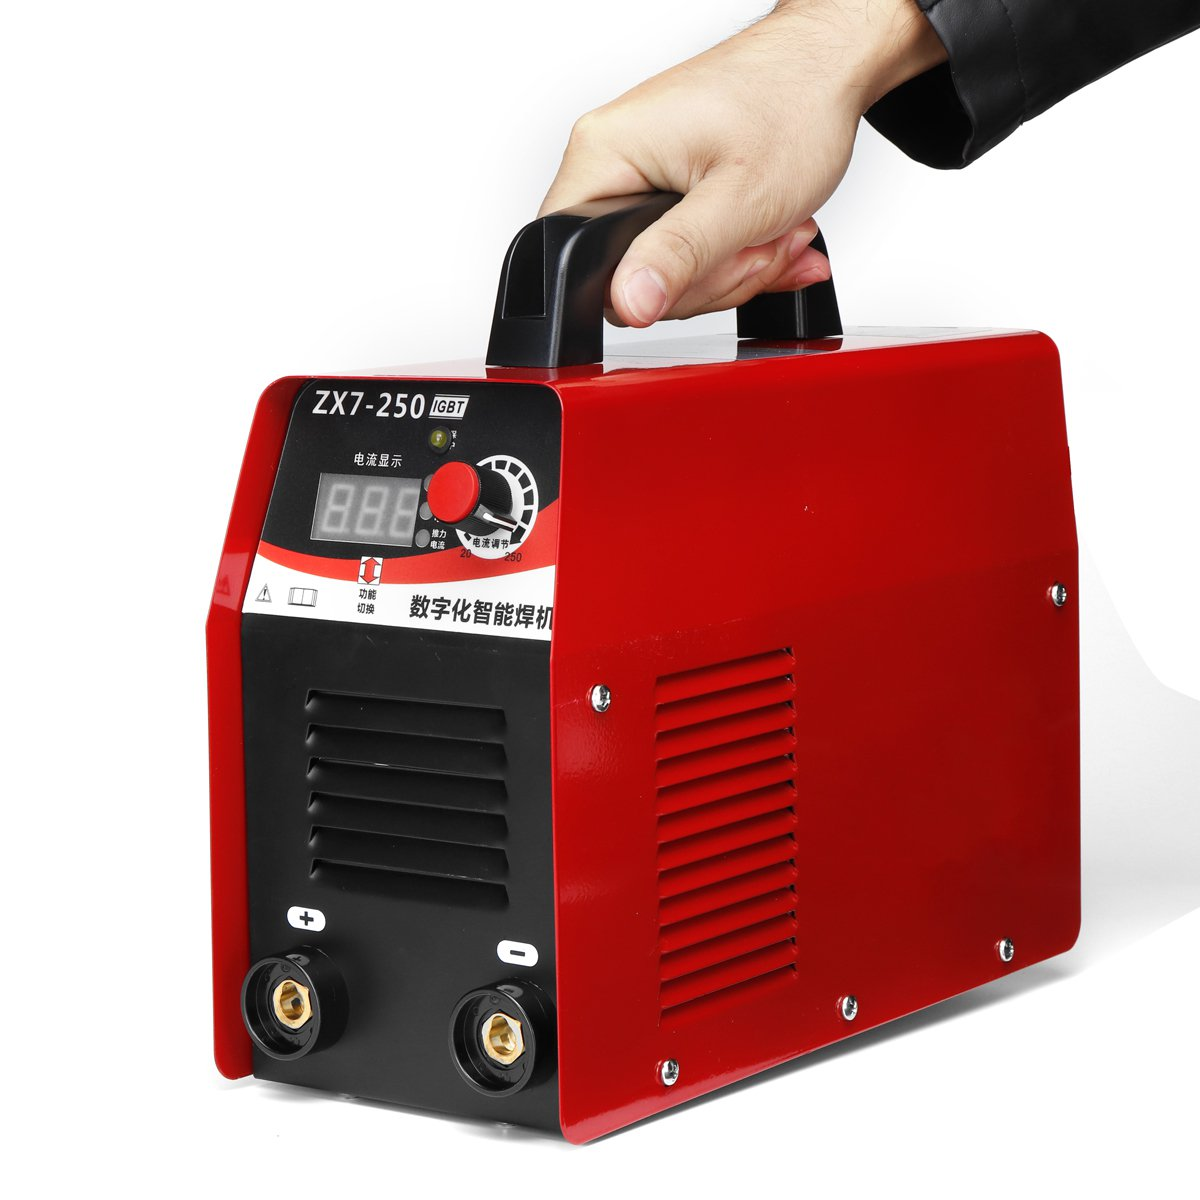 ZX7-250 220V 10-250A Electric ARC Welding Stick Welding Machine IGBT LCD Digital Display